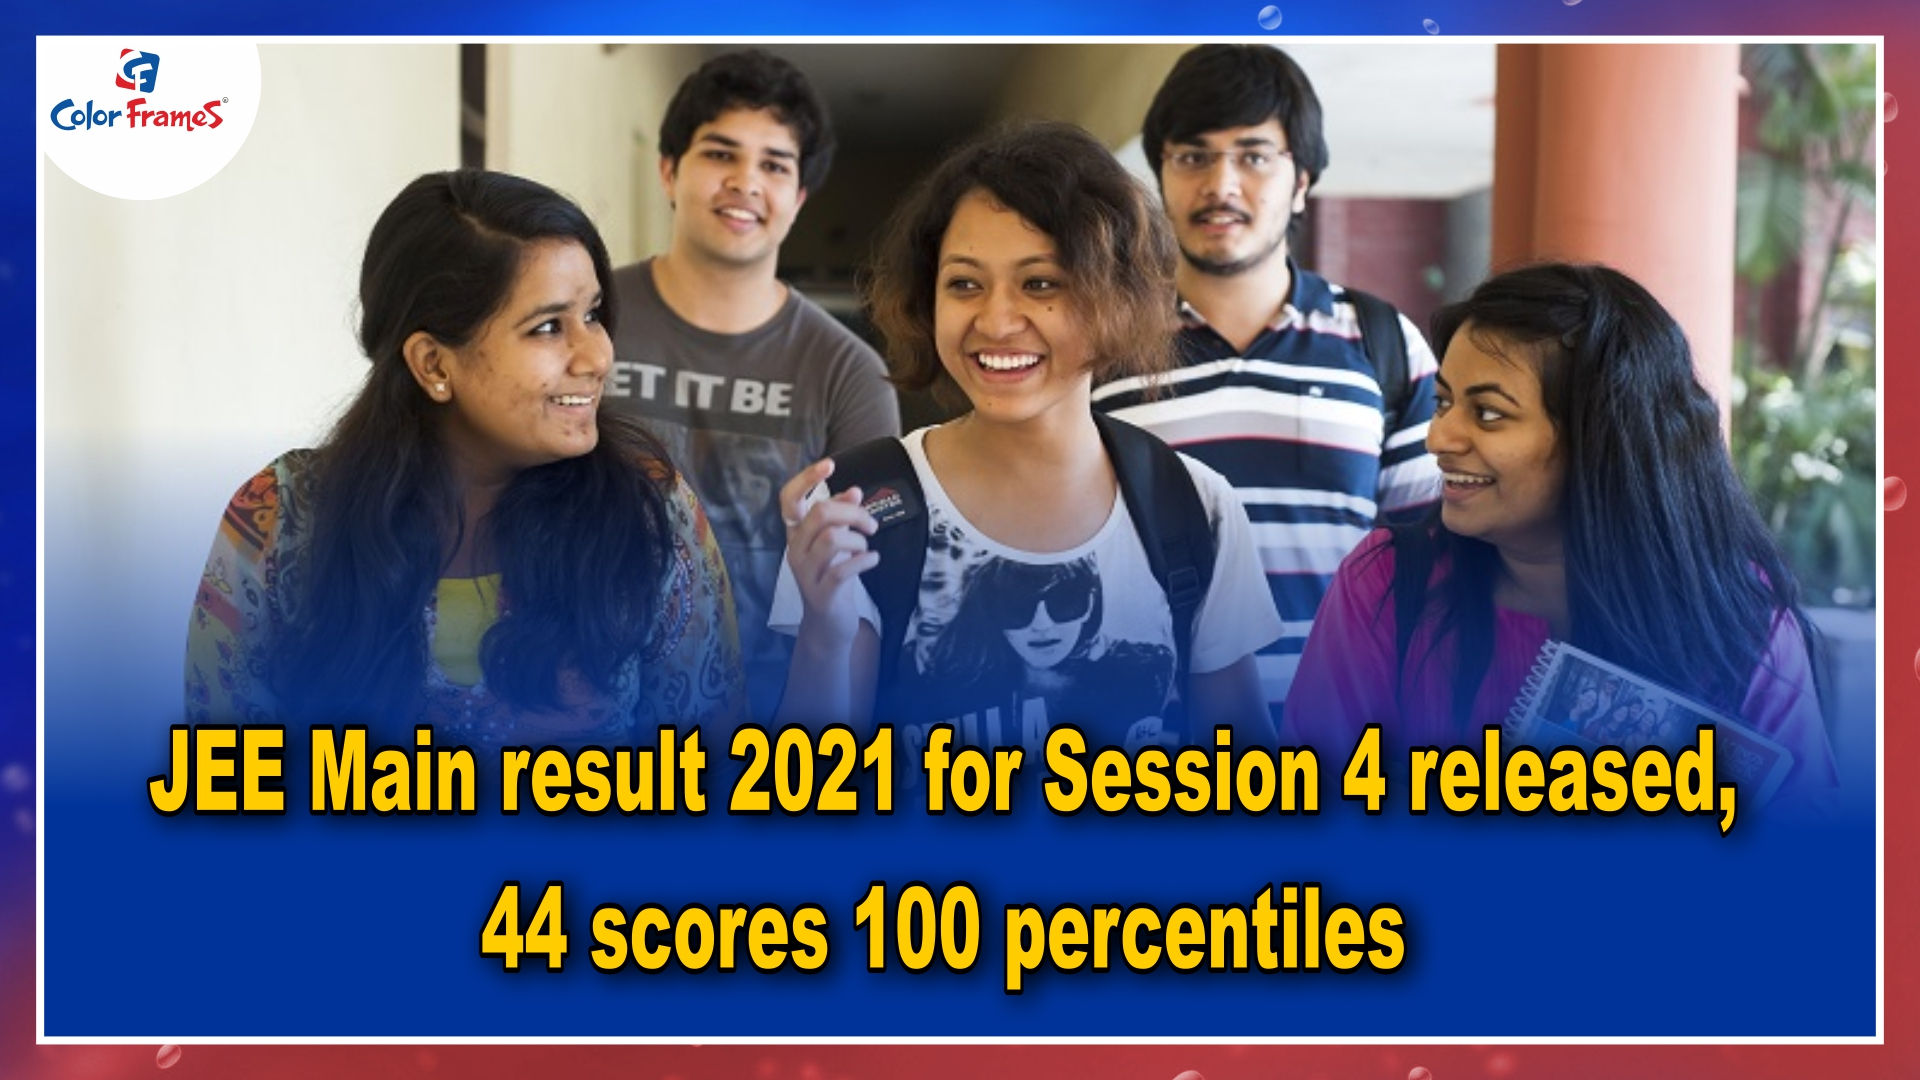 JEE Main result 2021 for Session 4 released, 44 scores 100 percentiles